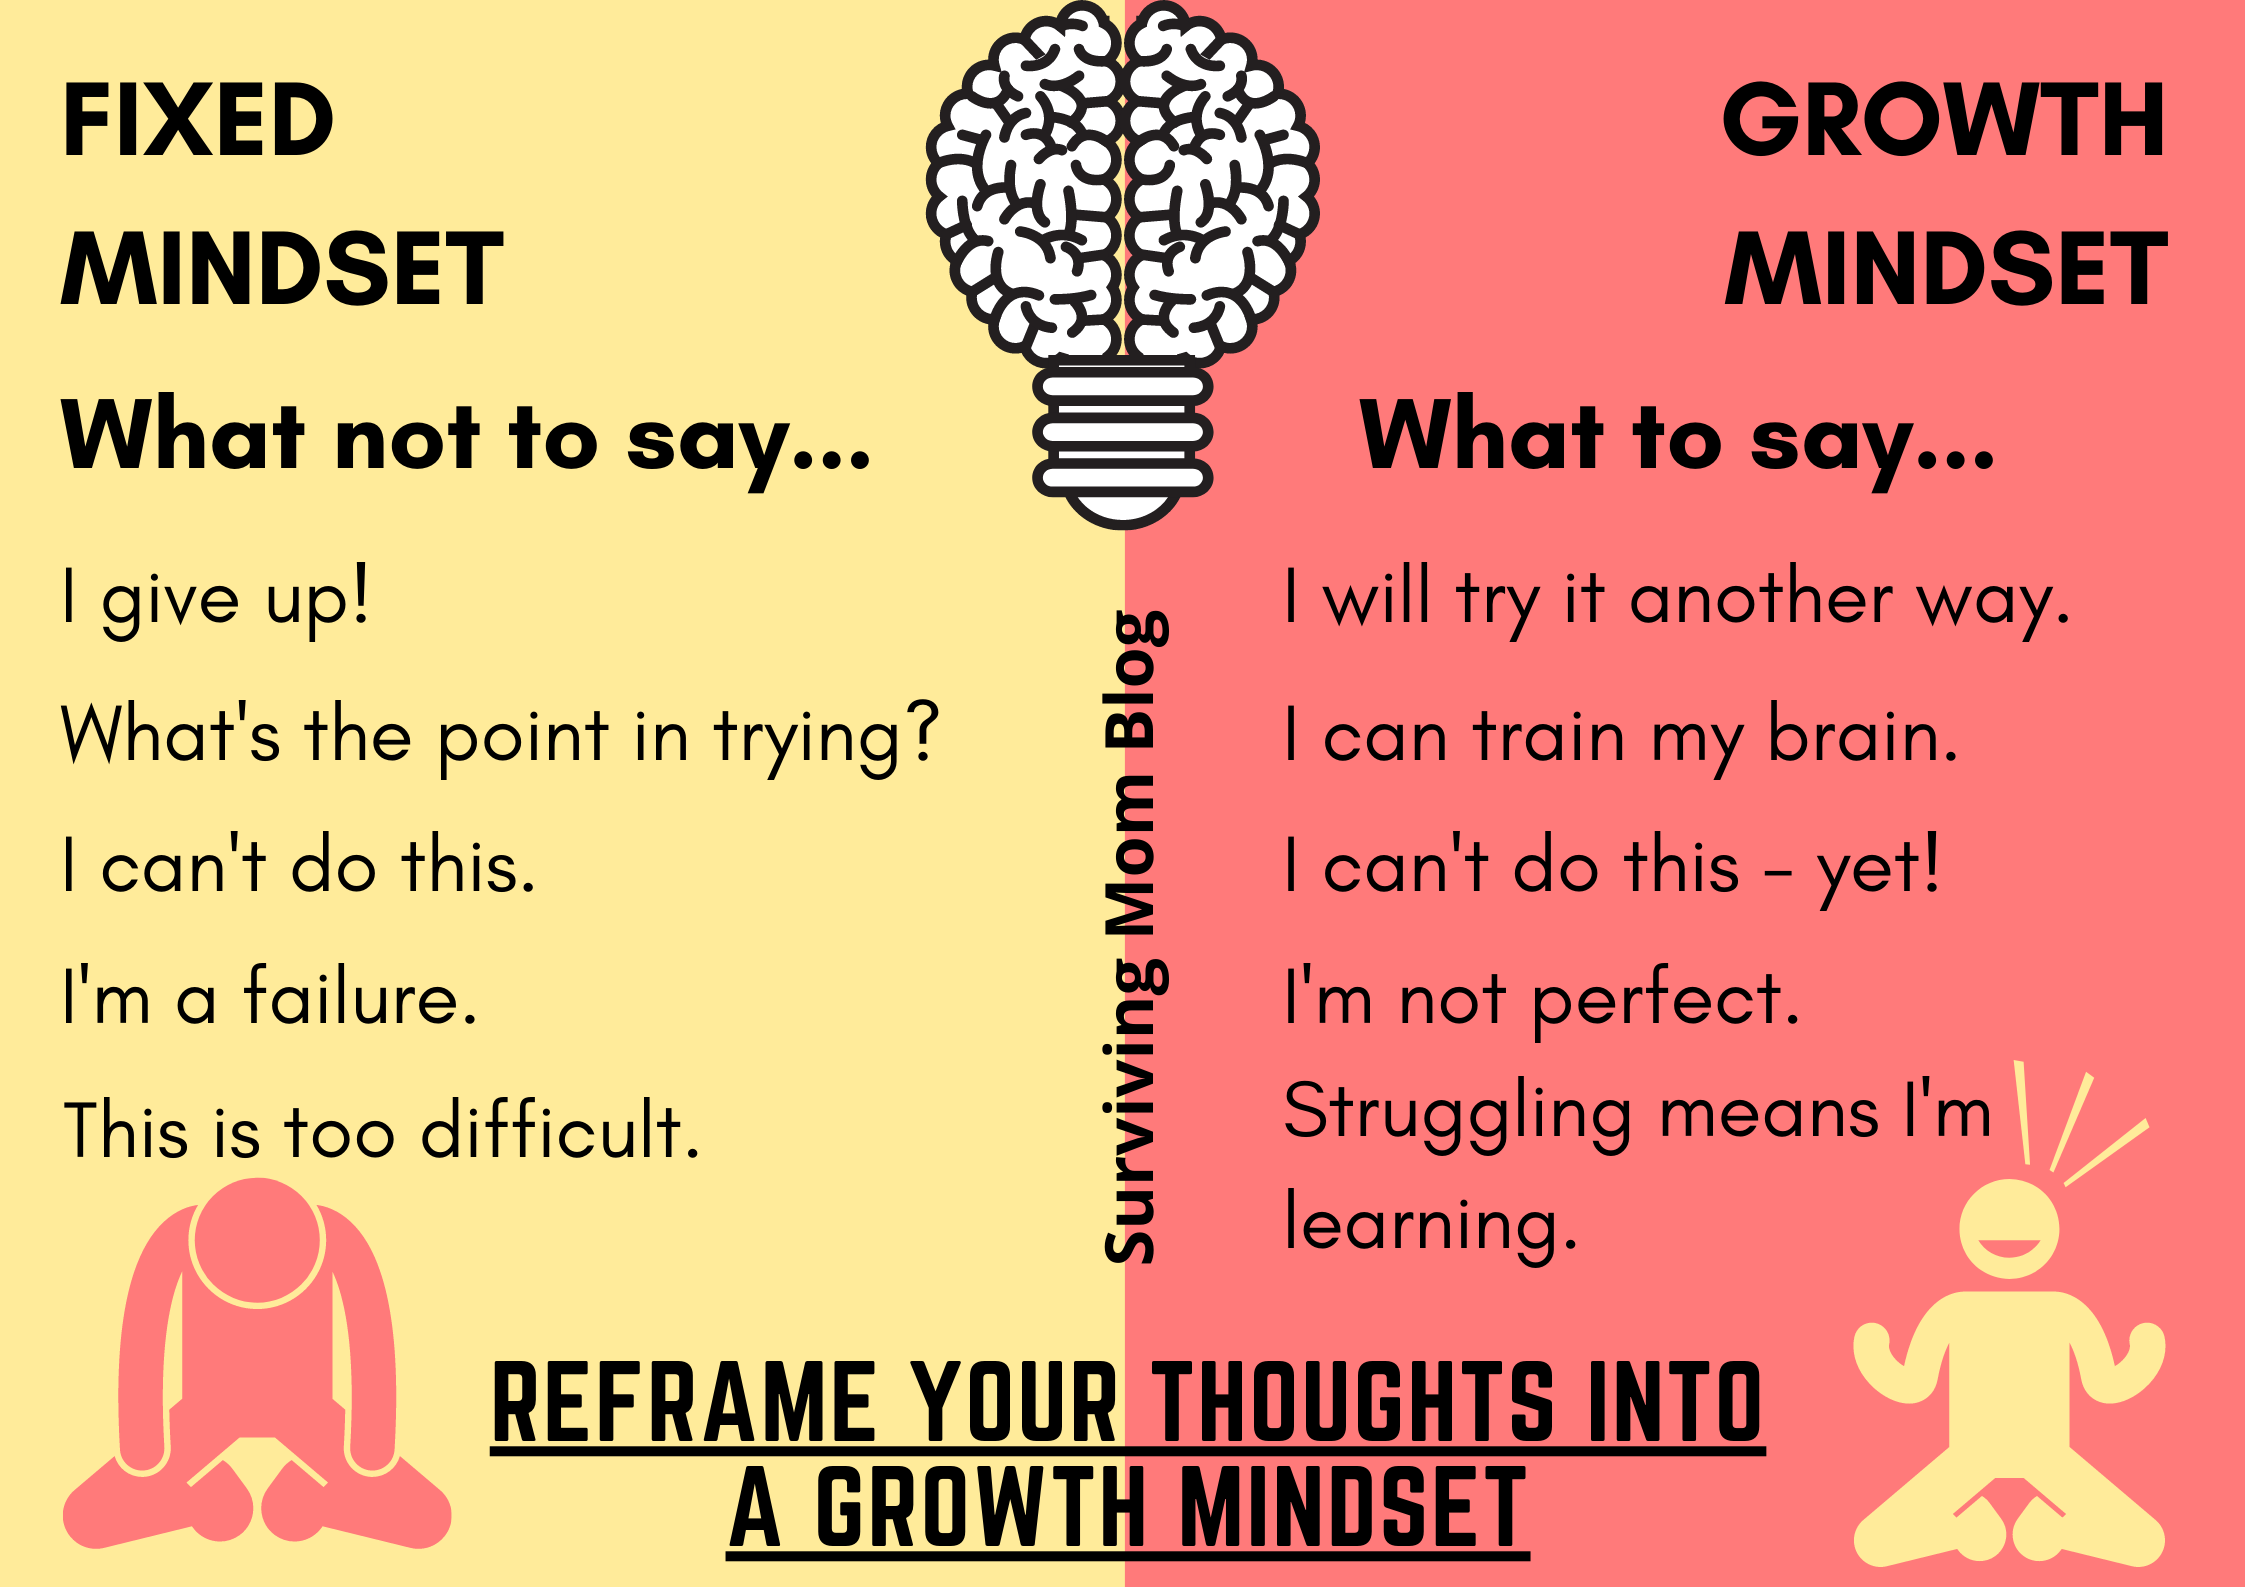 reframe your thoughts into a growth mindset